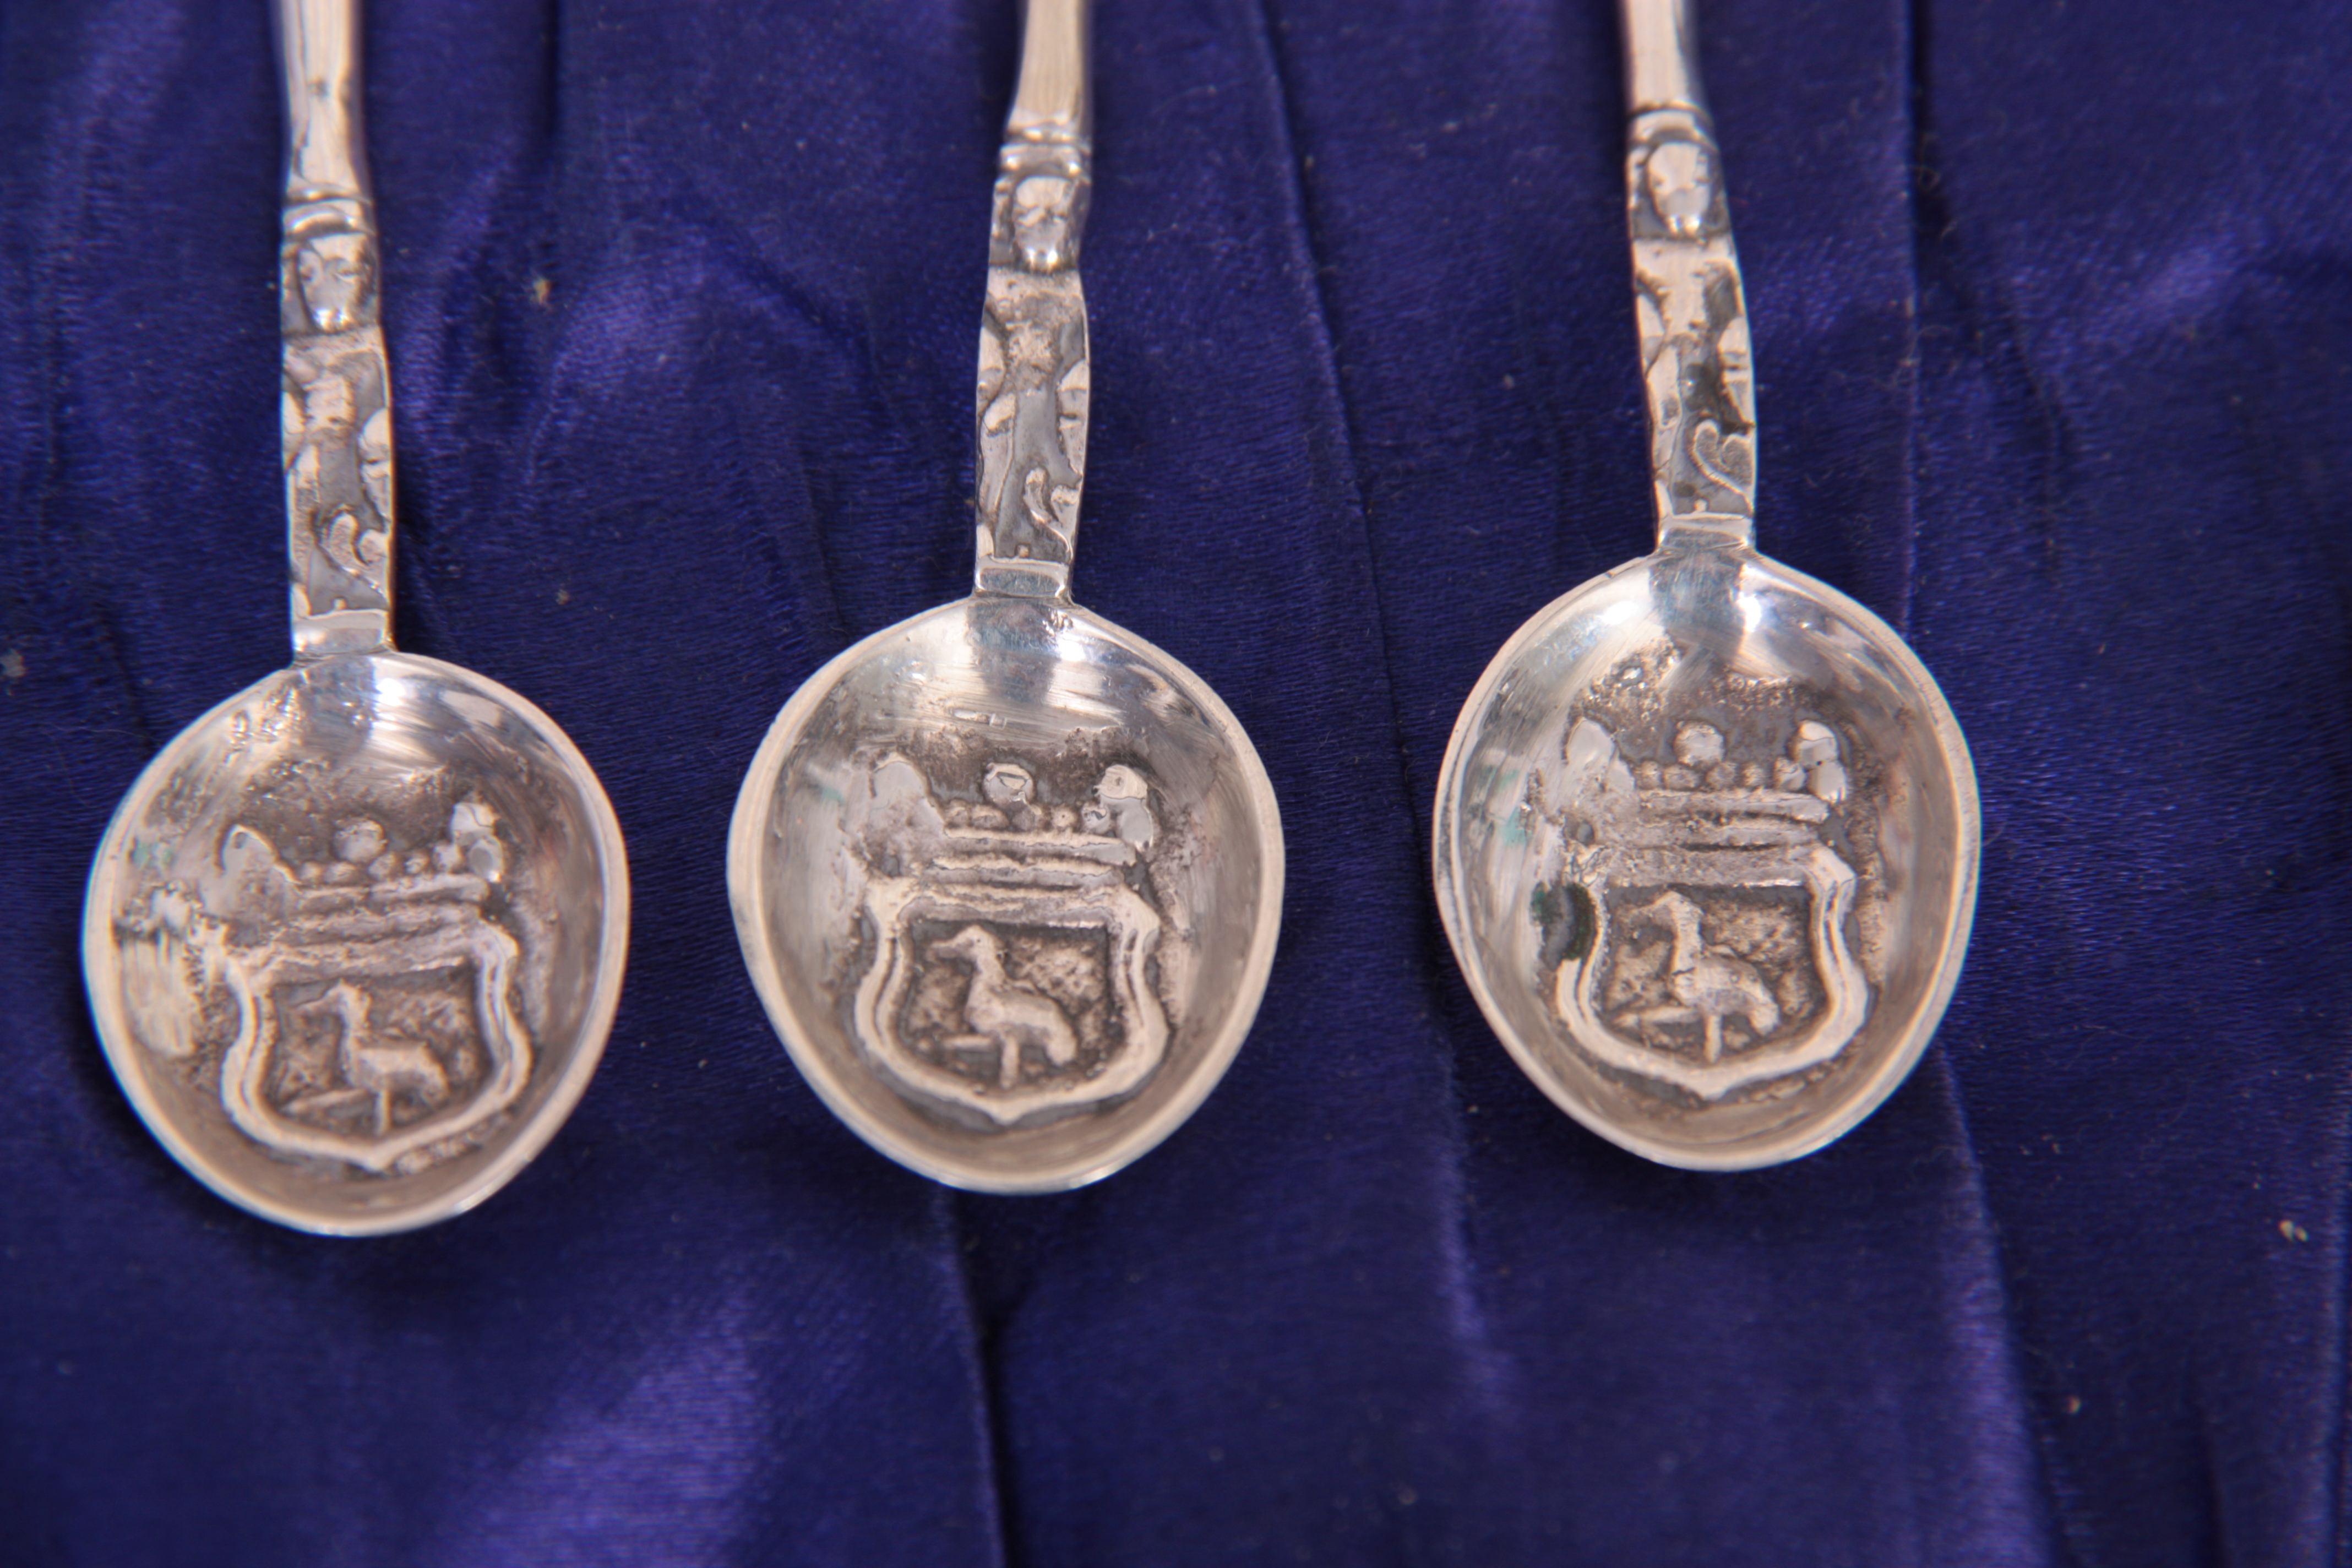 A SET OF SIX EDWARD VII GOTHIC STYLE CAST SILVER COFFEE SPOONS with Galleon topped figural stems and - Image 2 of 4